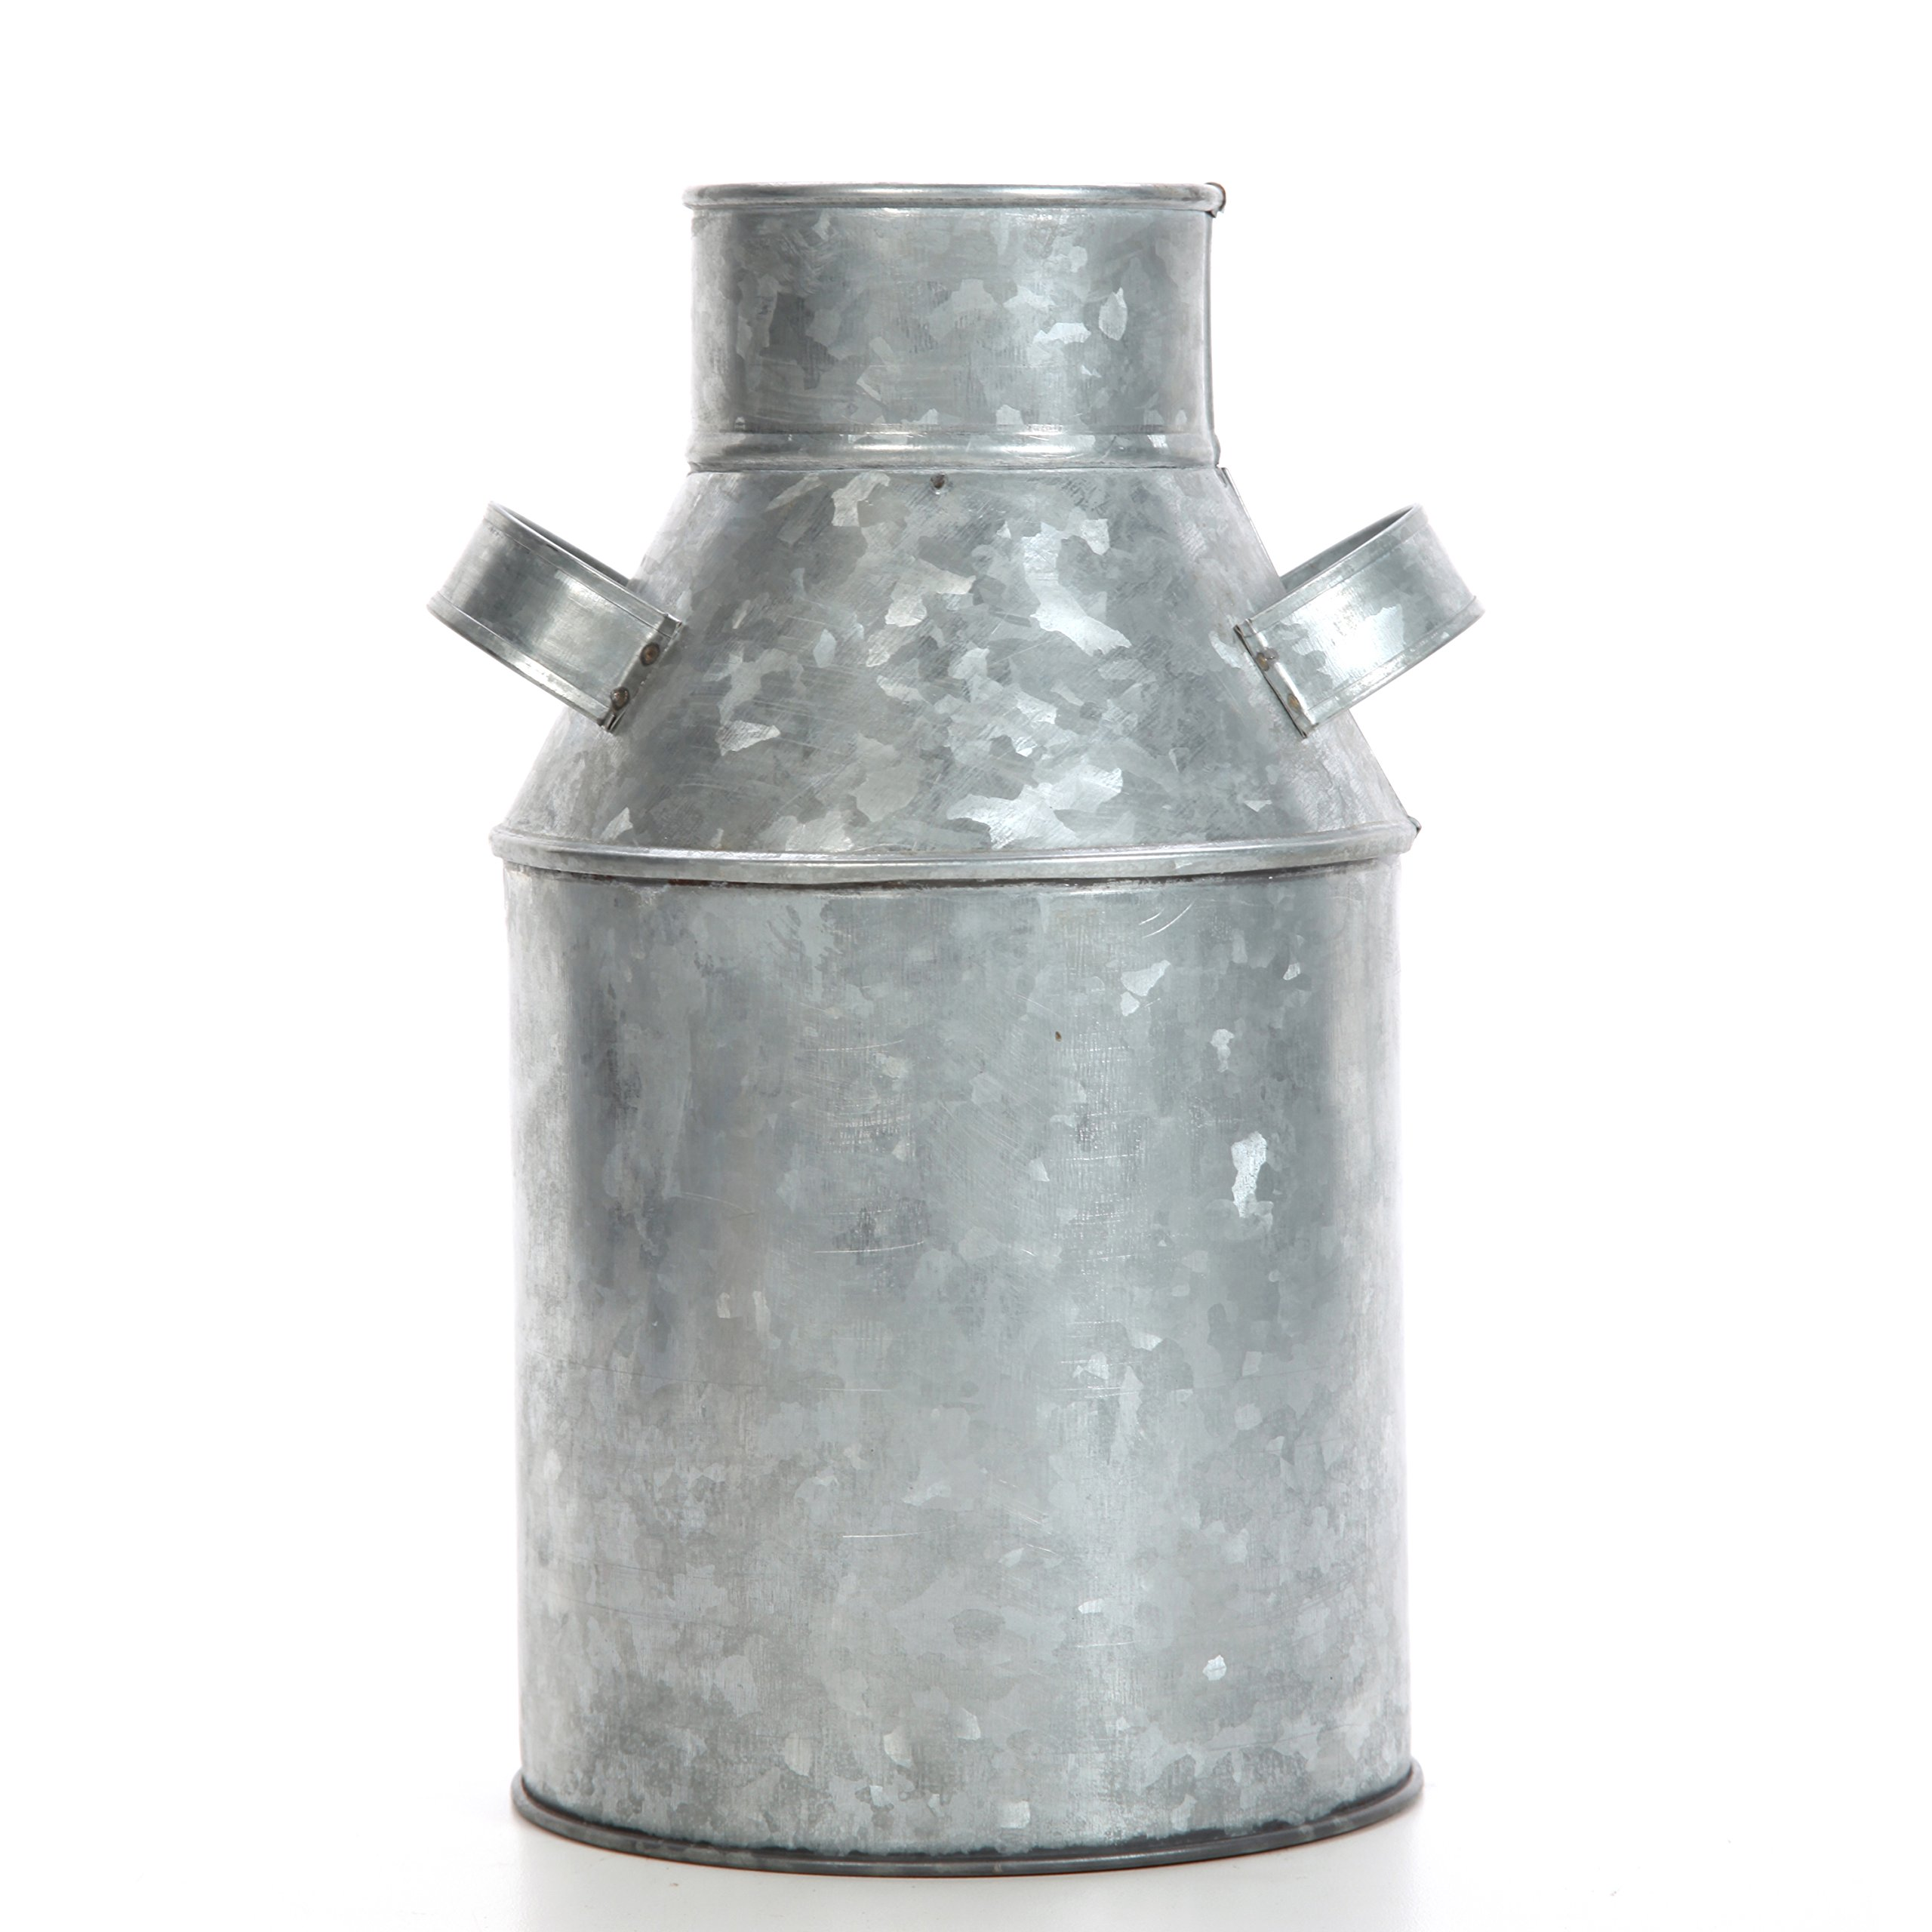 Hosley Galvanized Milk Can - 9.75'' High. Ideal for Weddings, Spa, Flower Arrangements. O3 by Hosley